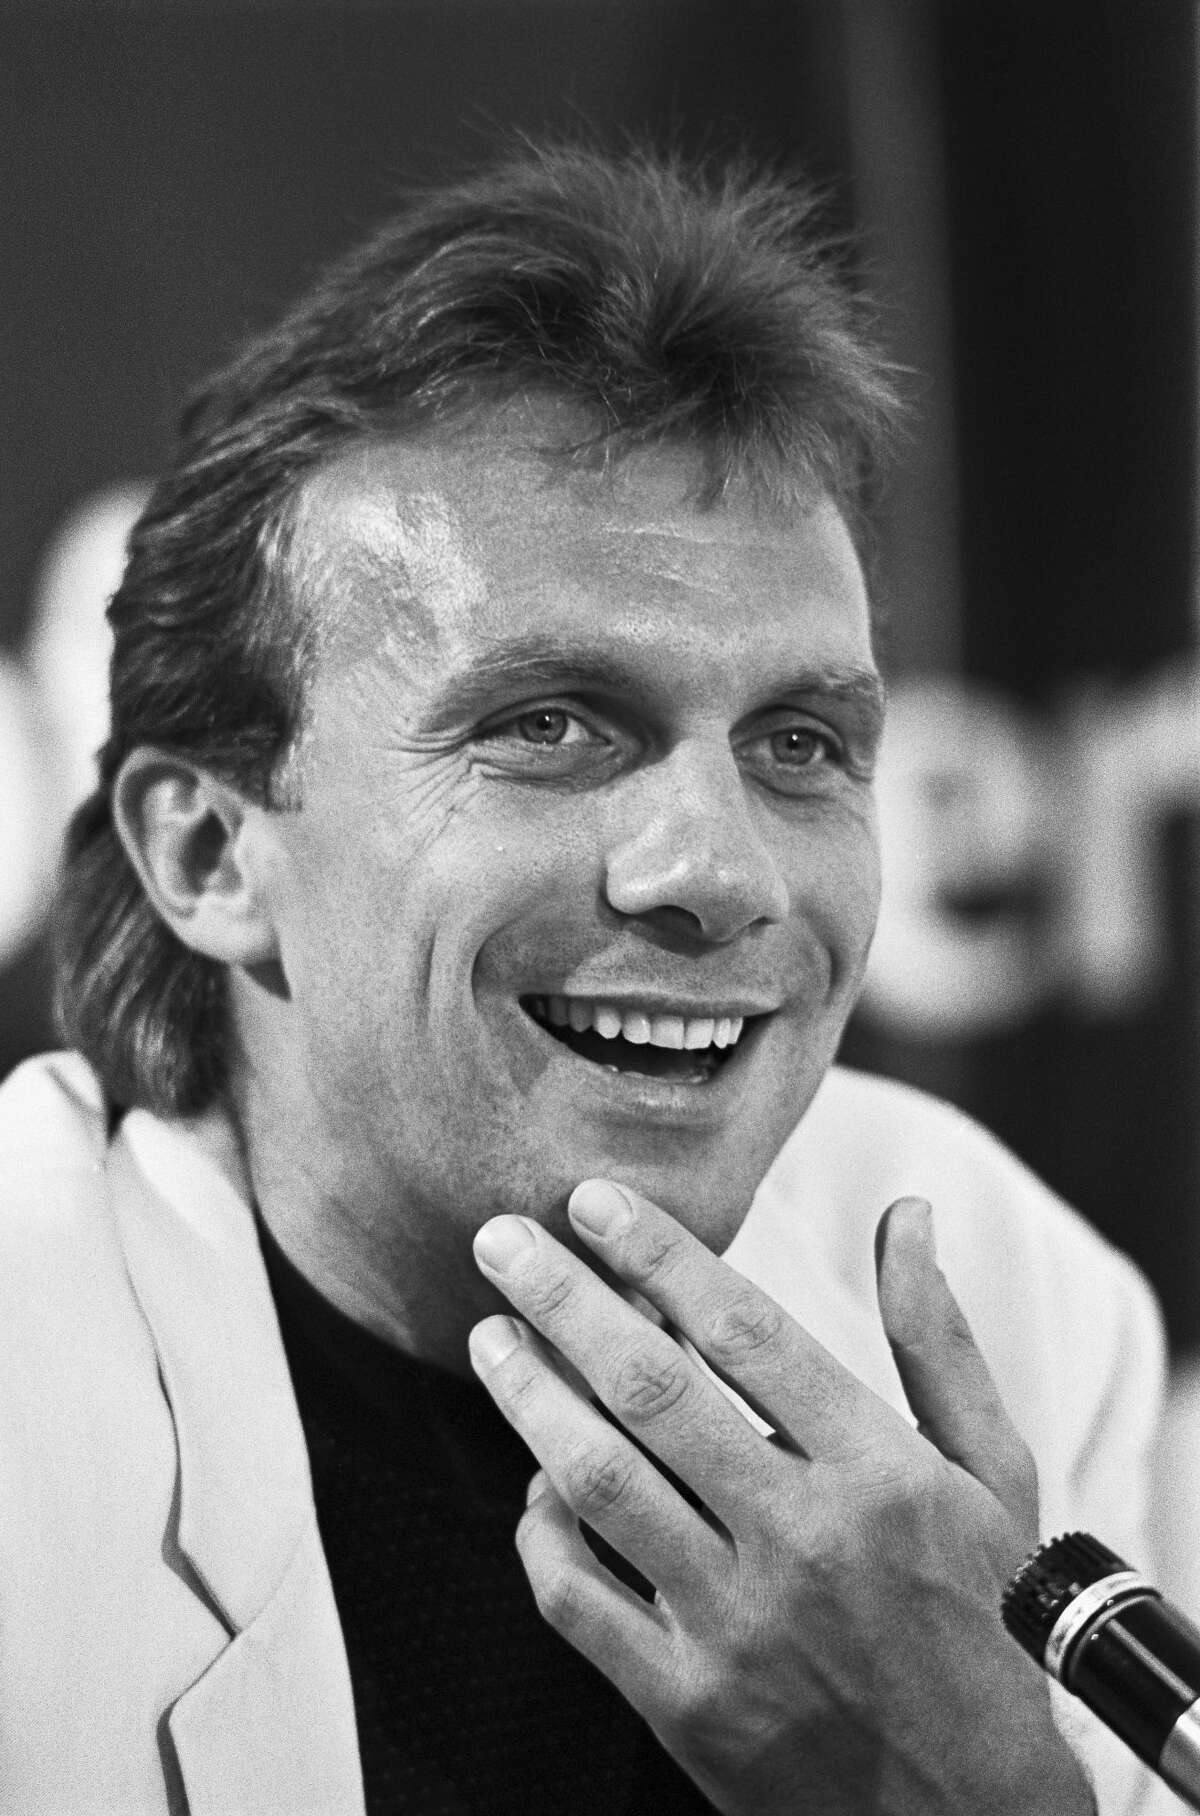 Joe Montana ruled football. Montana started his NFL career in 1979 with San Francisco, where he played for the next 14 seasons. While a member of the 49ers, Montana started and won four Super Bowls and was the first player ever to have been named Super Bowl MVP three times.